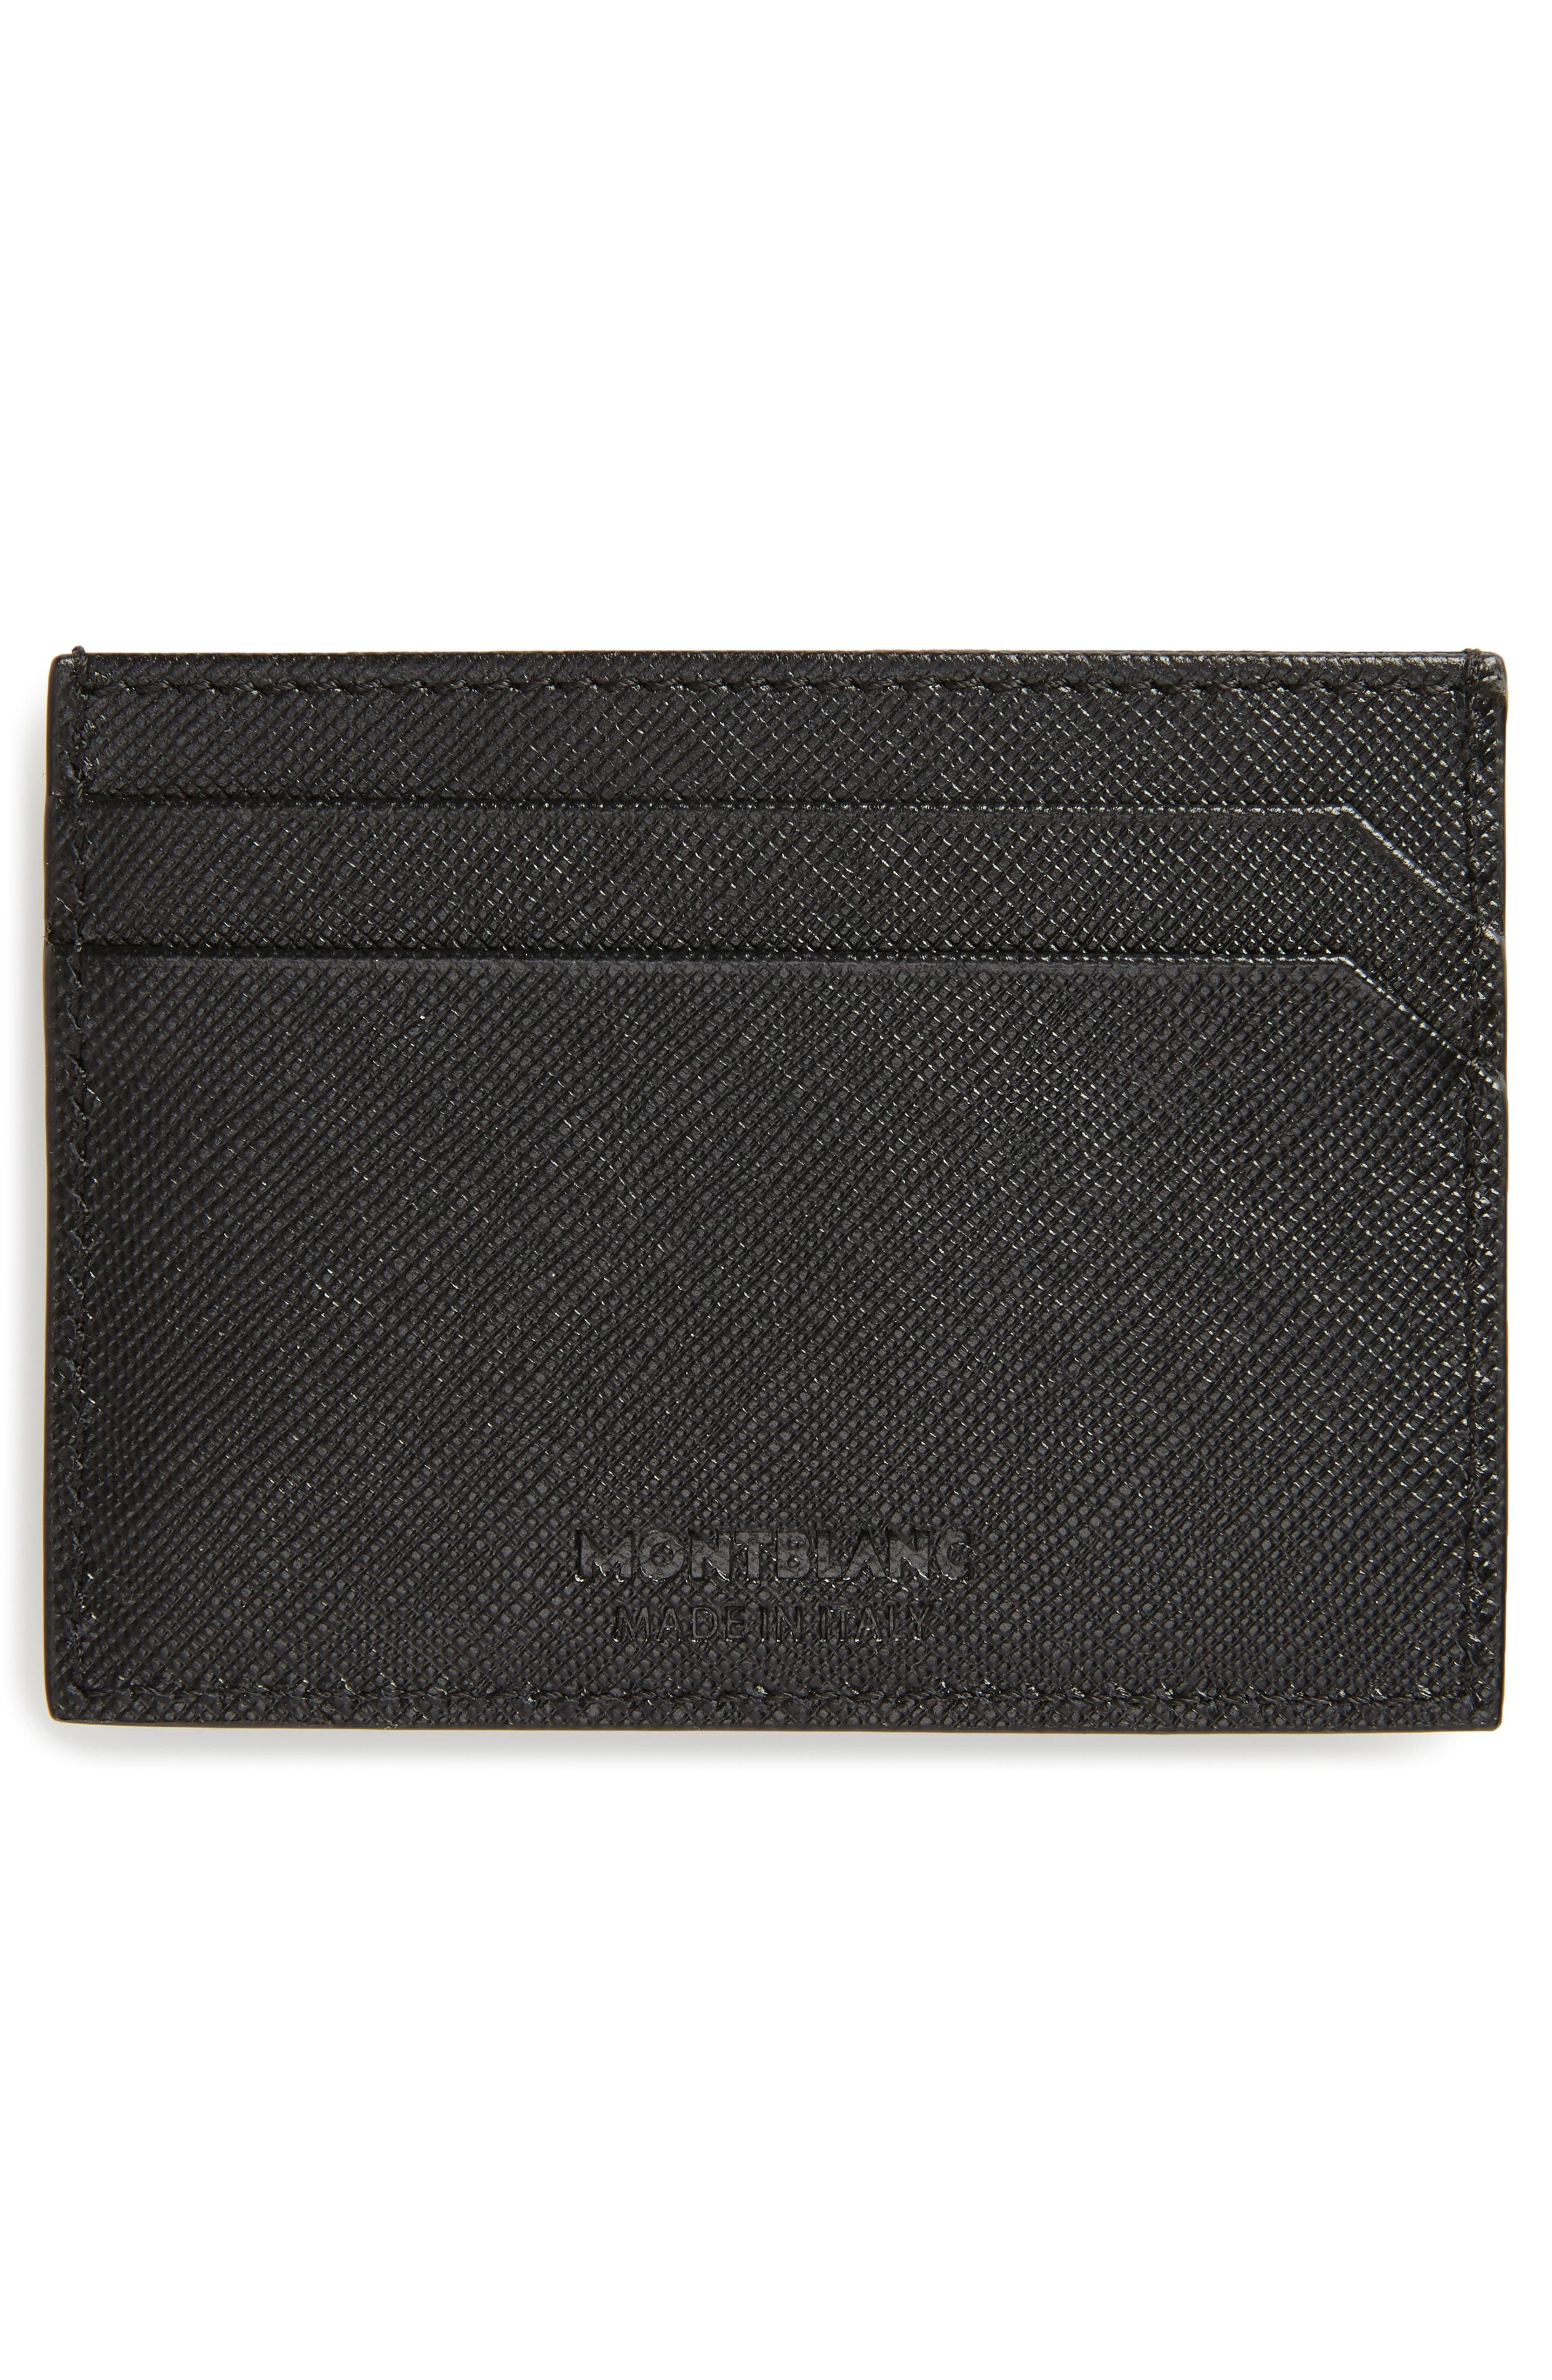 MONTBLANC, Sartorial Leather Card Case, Alternate thumbnail 2, color, 001